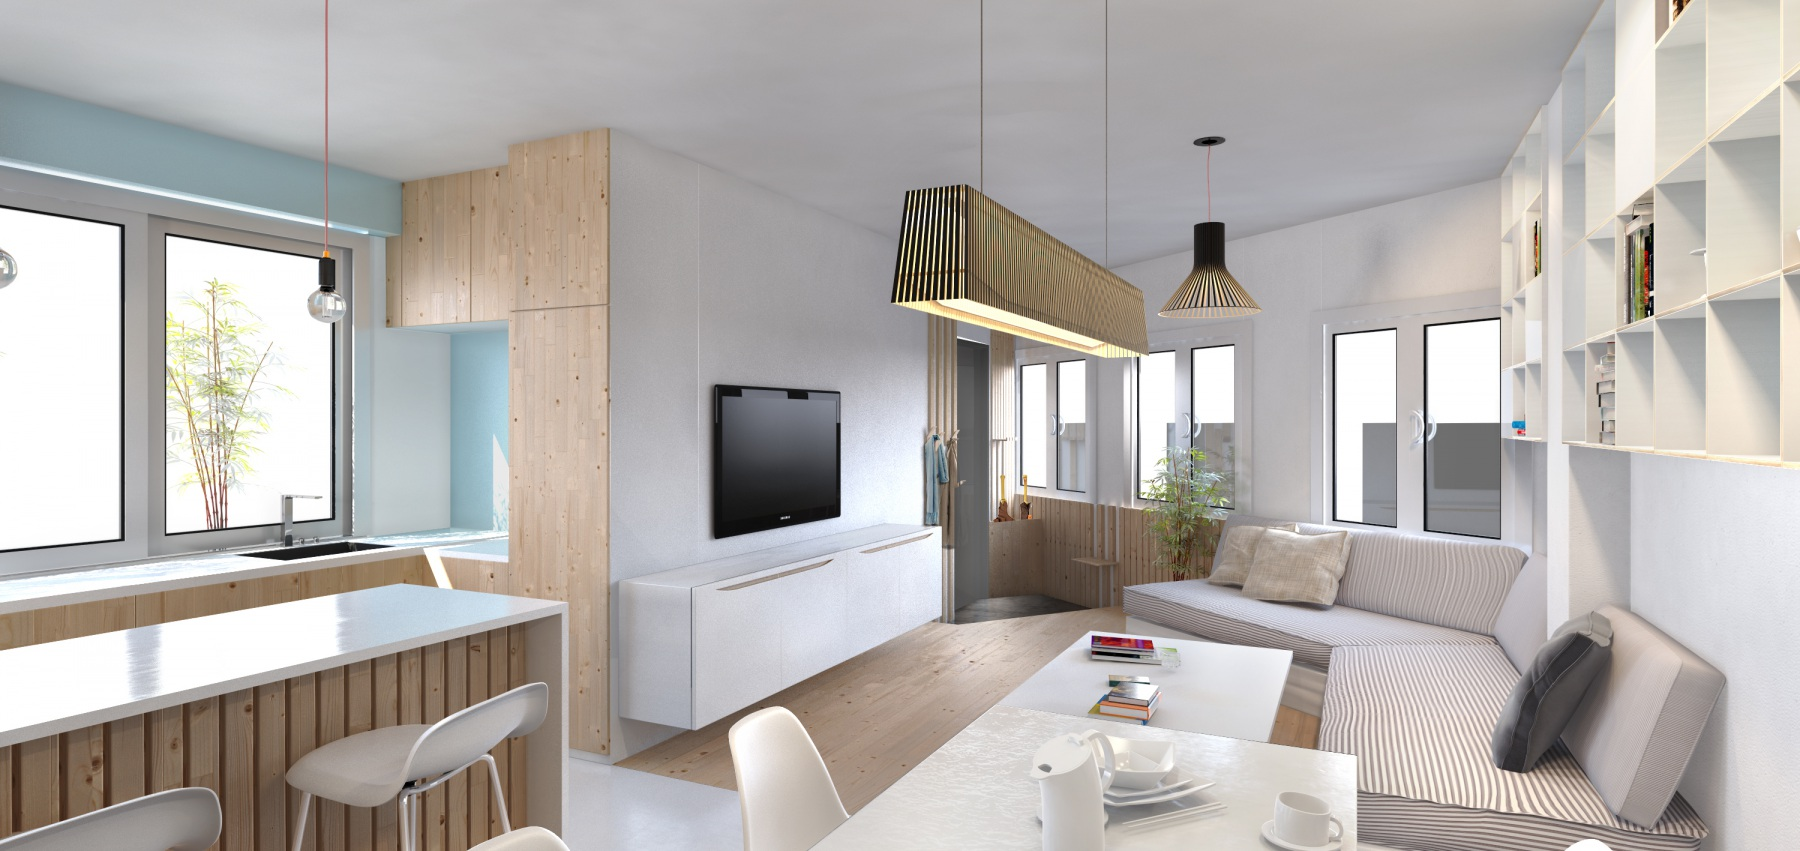 Appartement Design Affordable Bordelais With Appartement